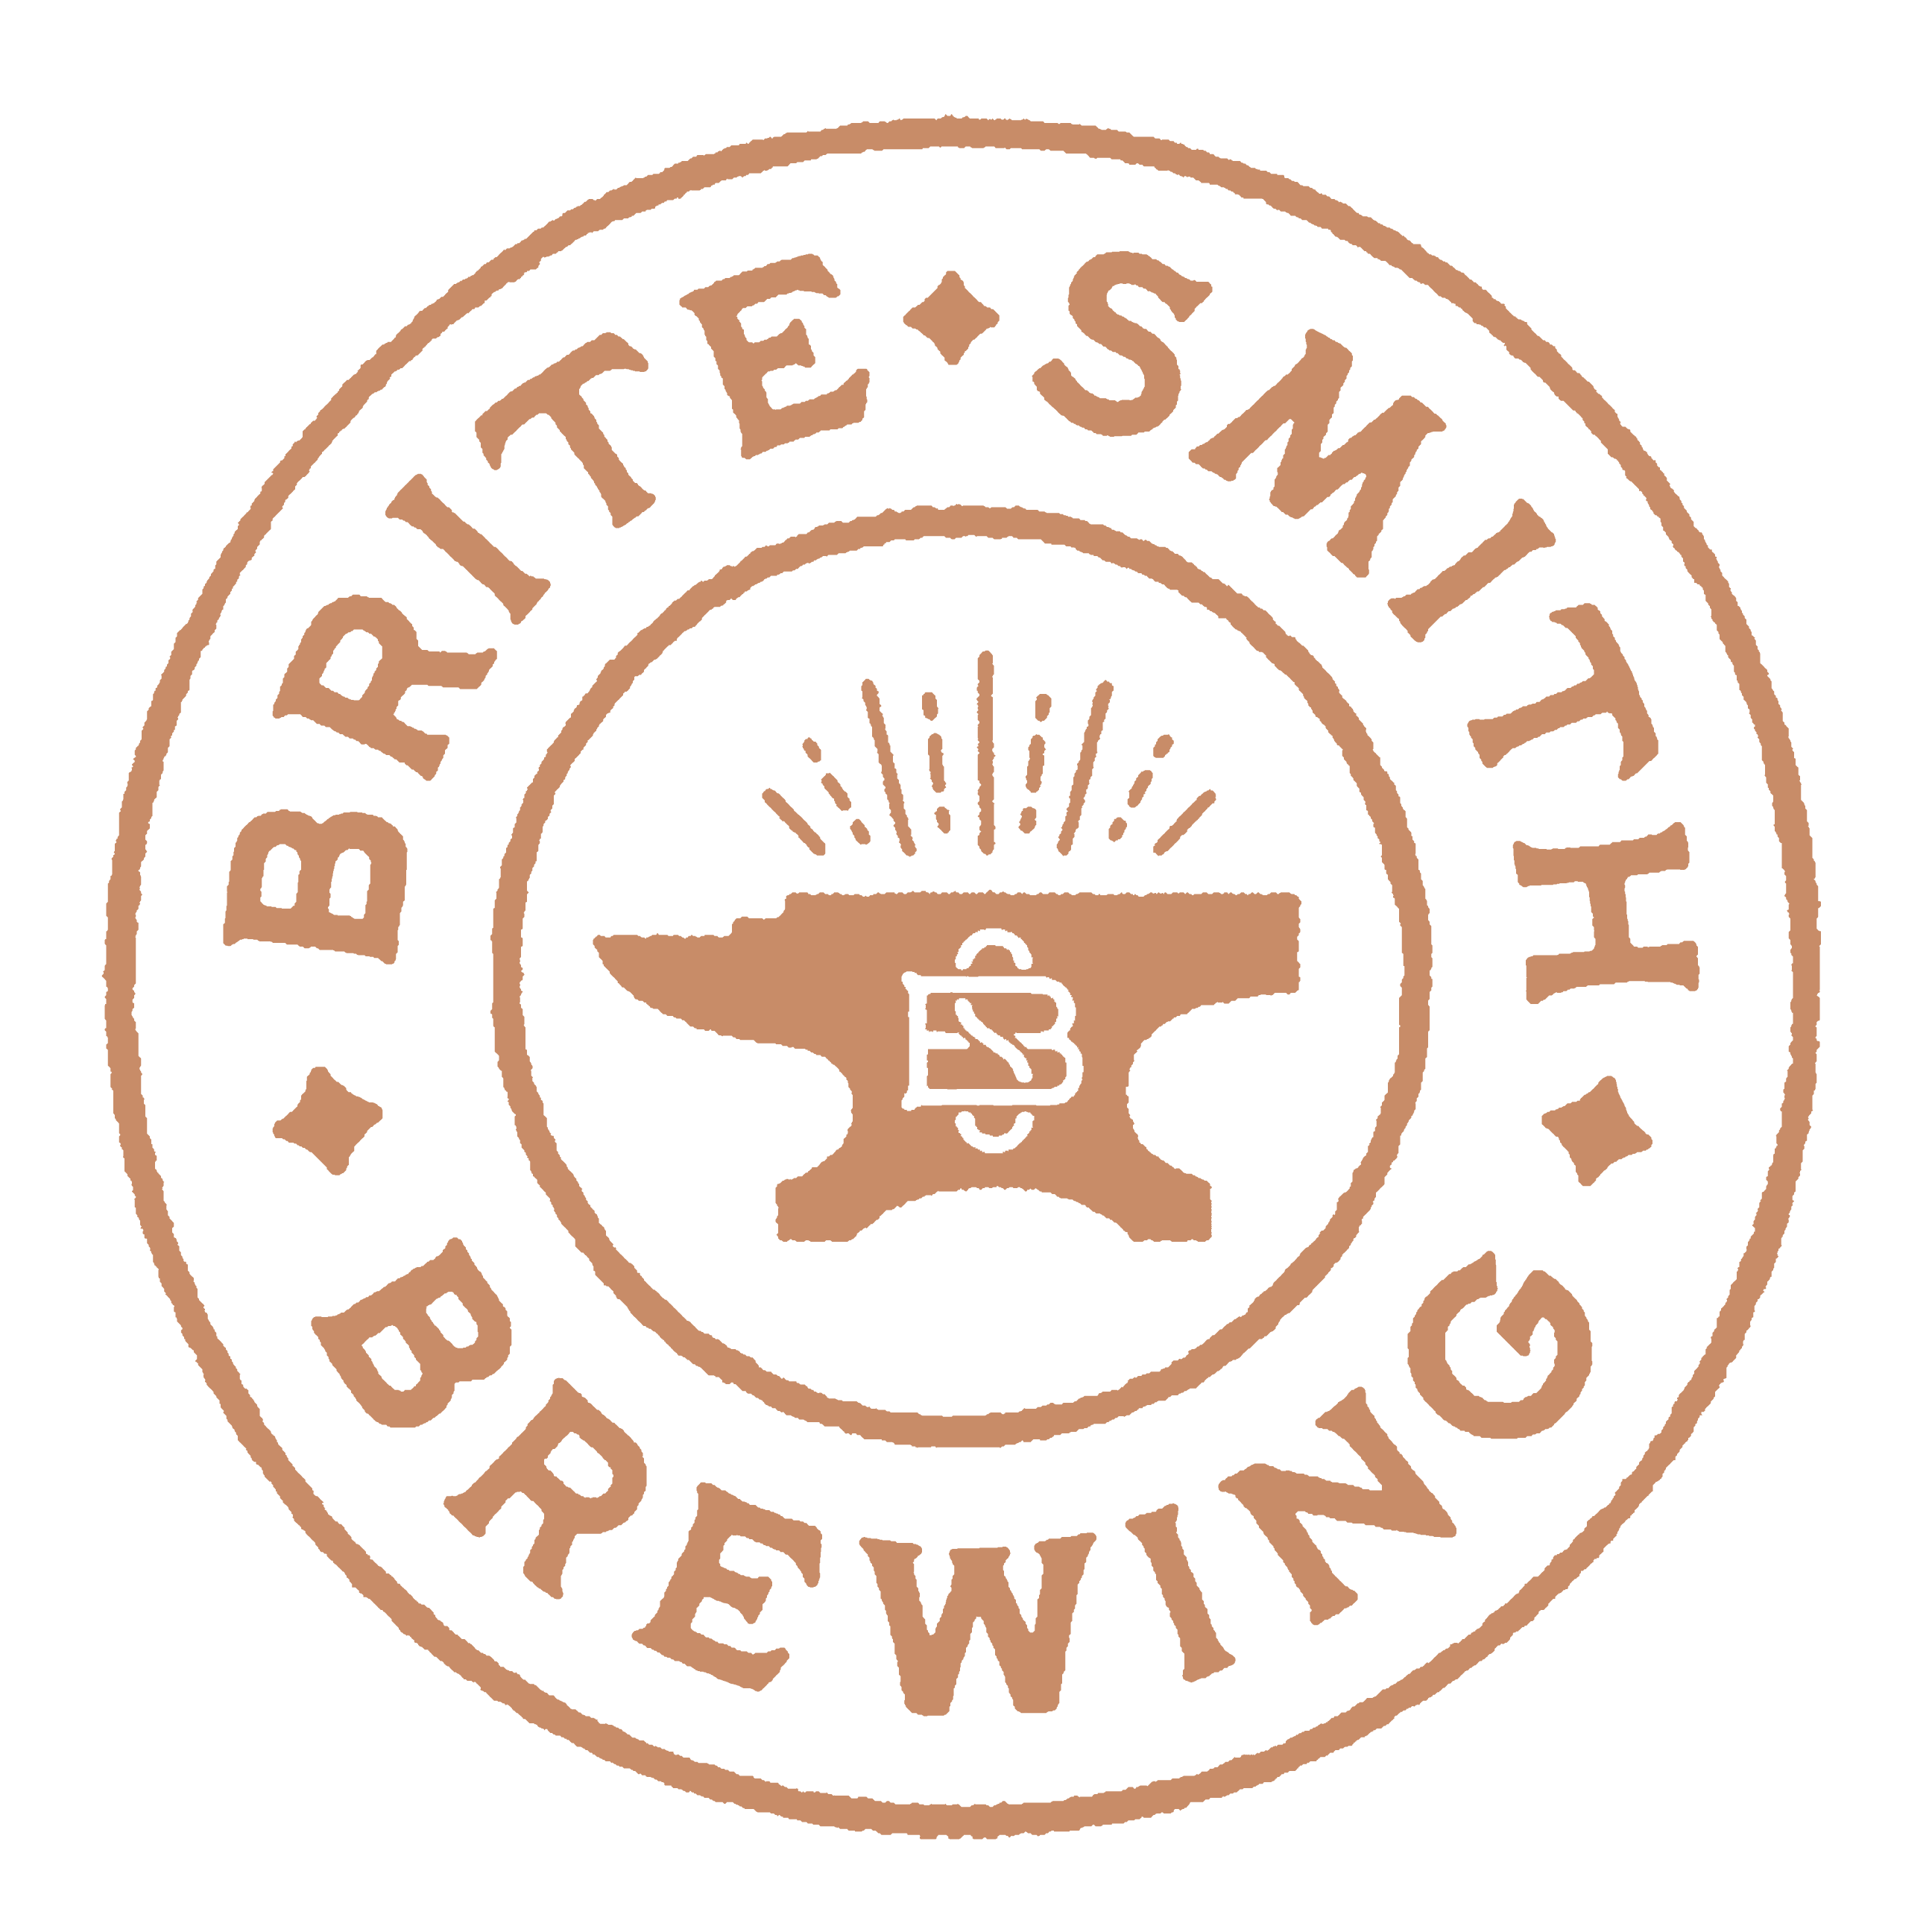 Britesmith Brewing - Williamsville, NY